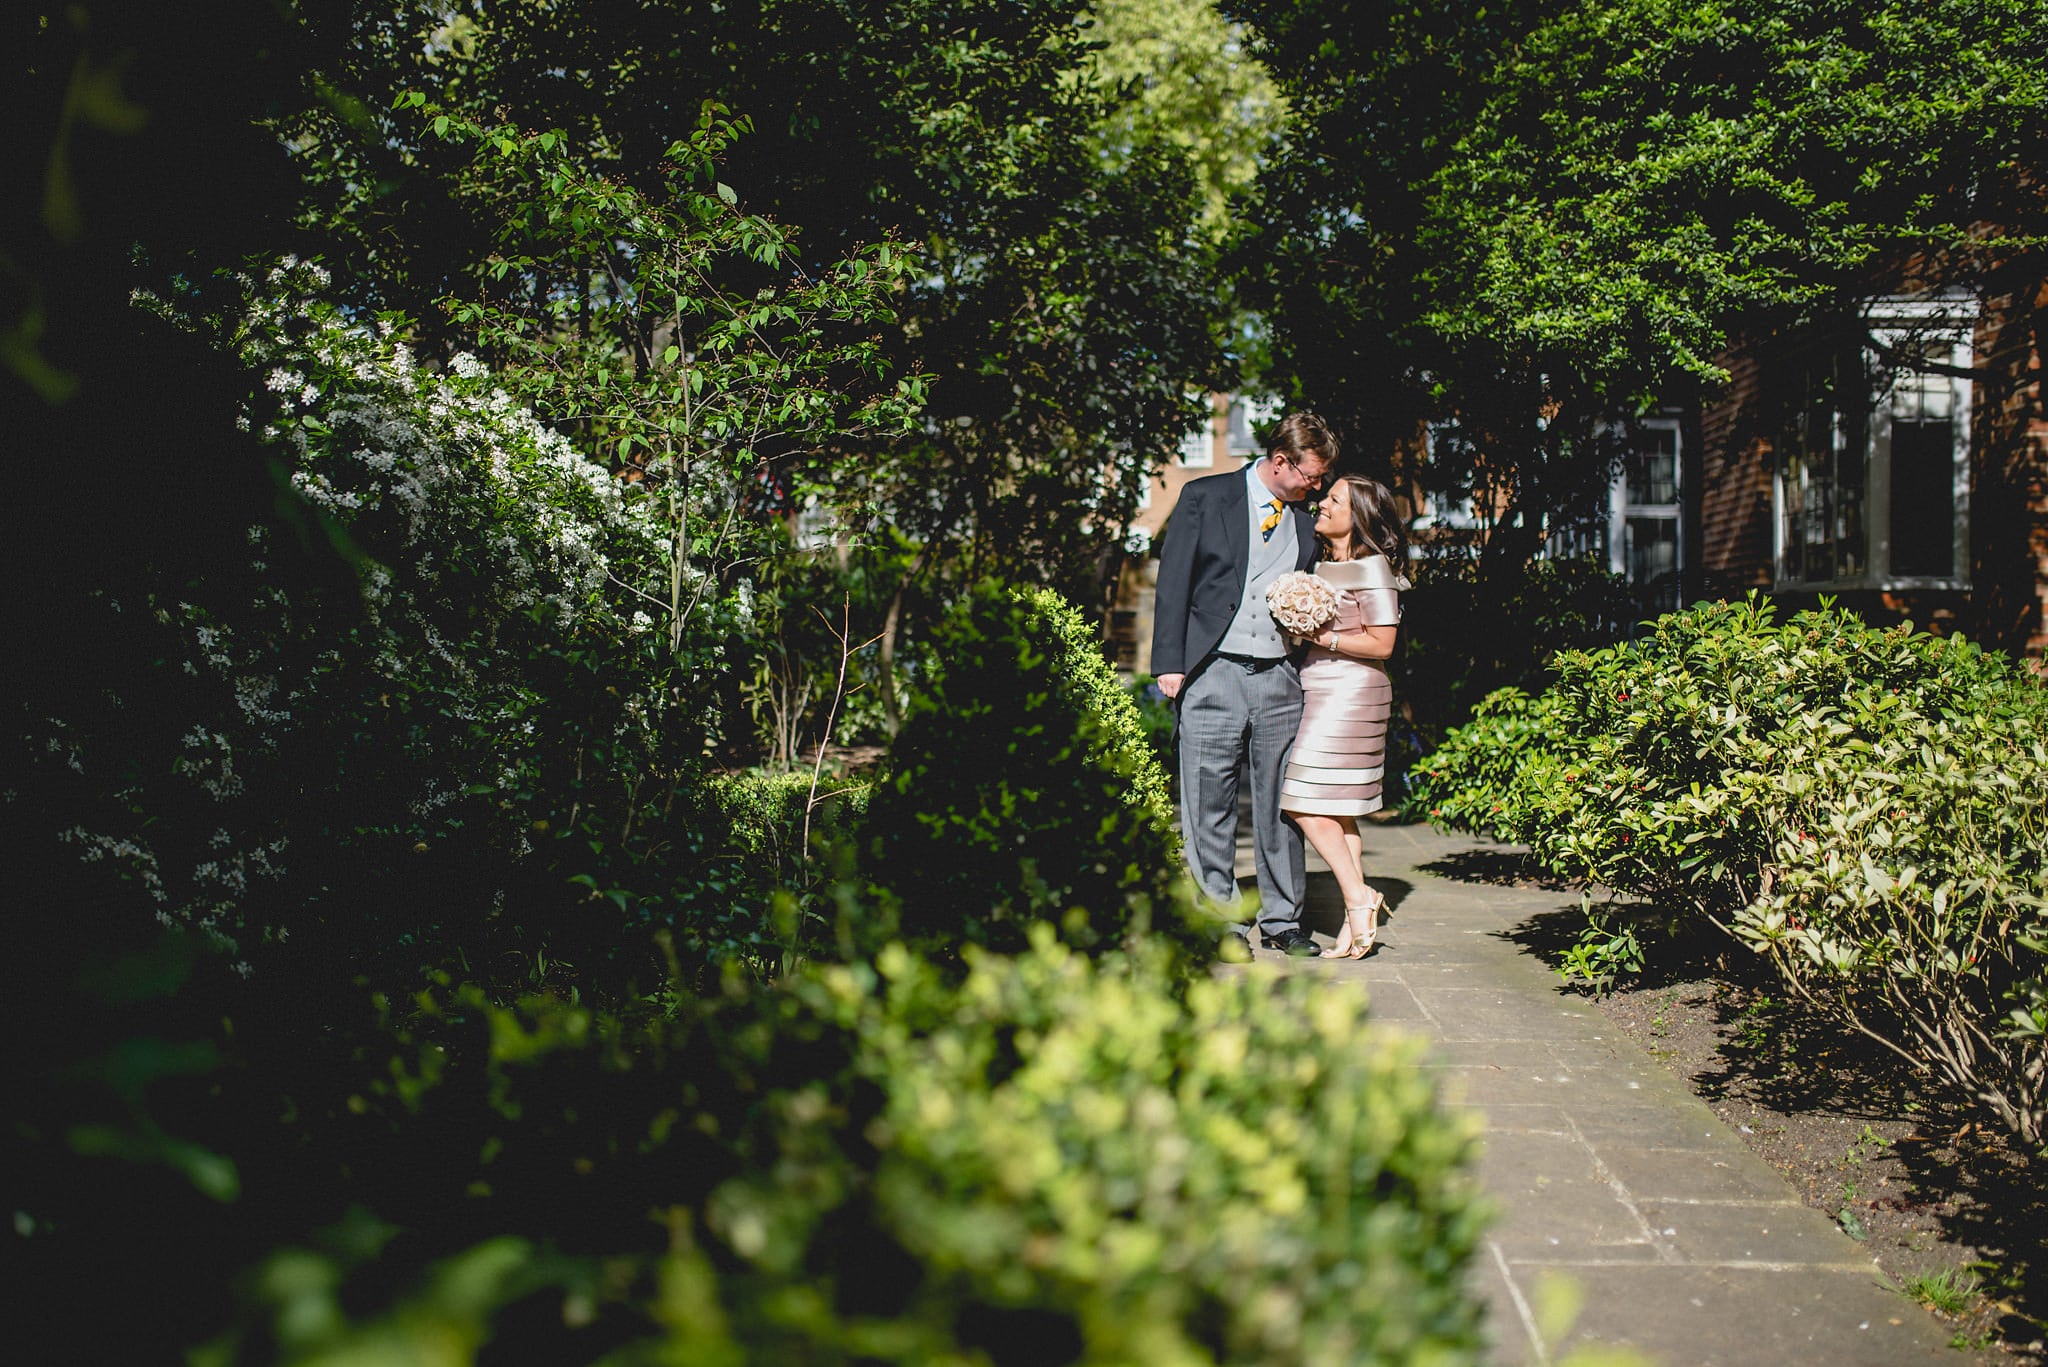 Bride and groom pose together in Chelsea sunshine